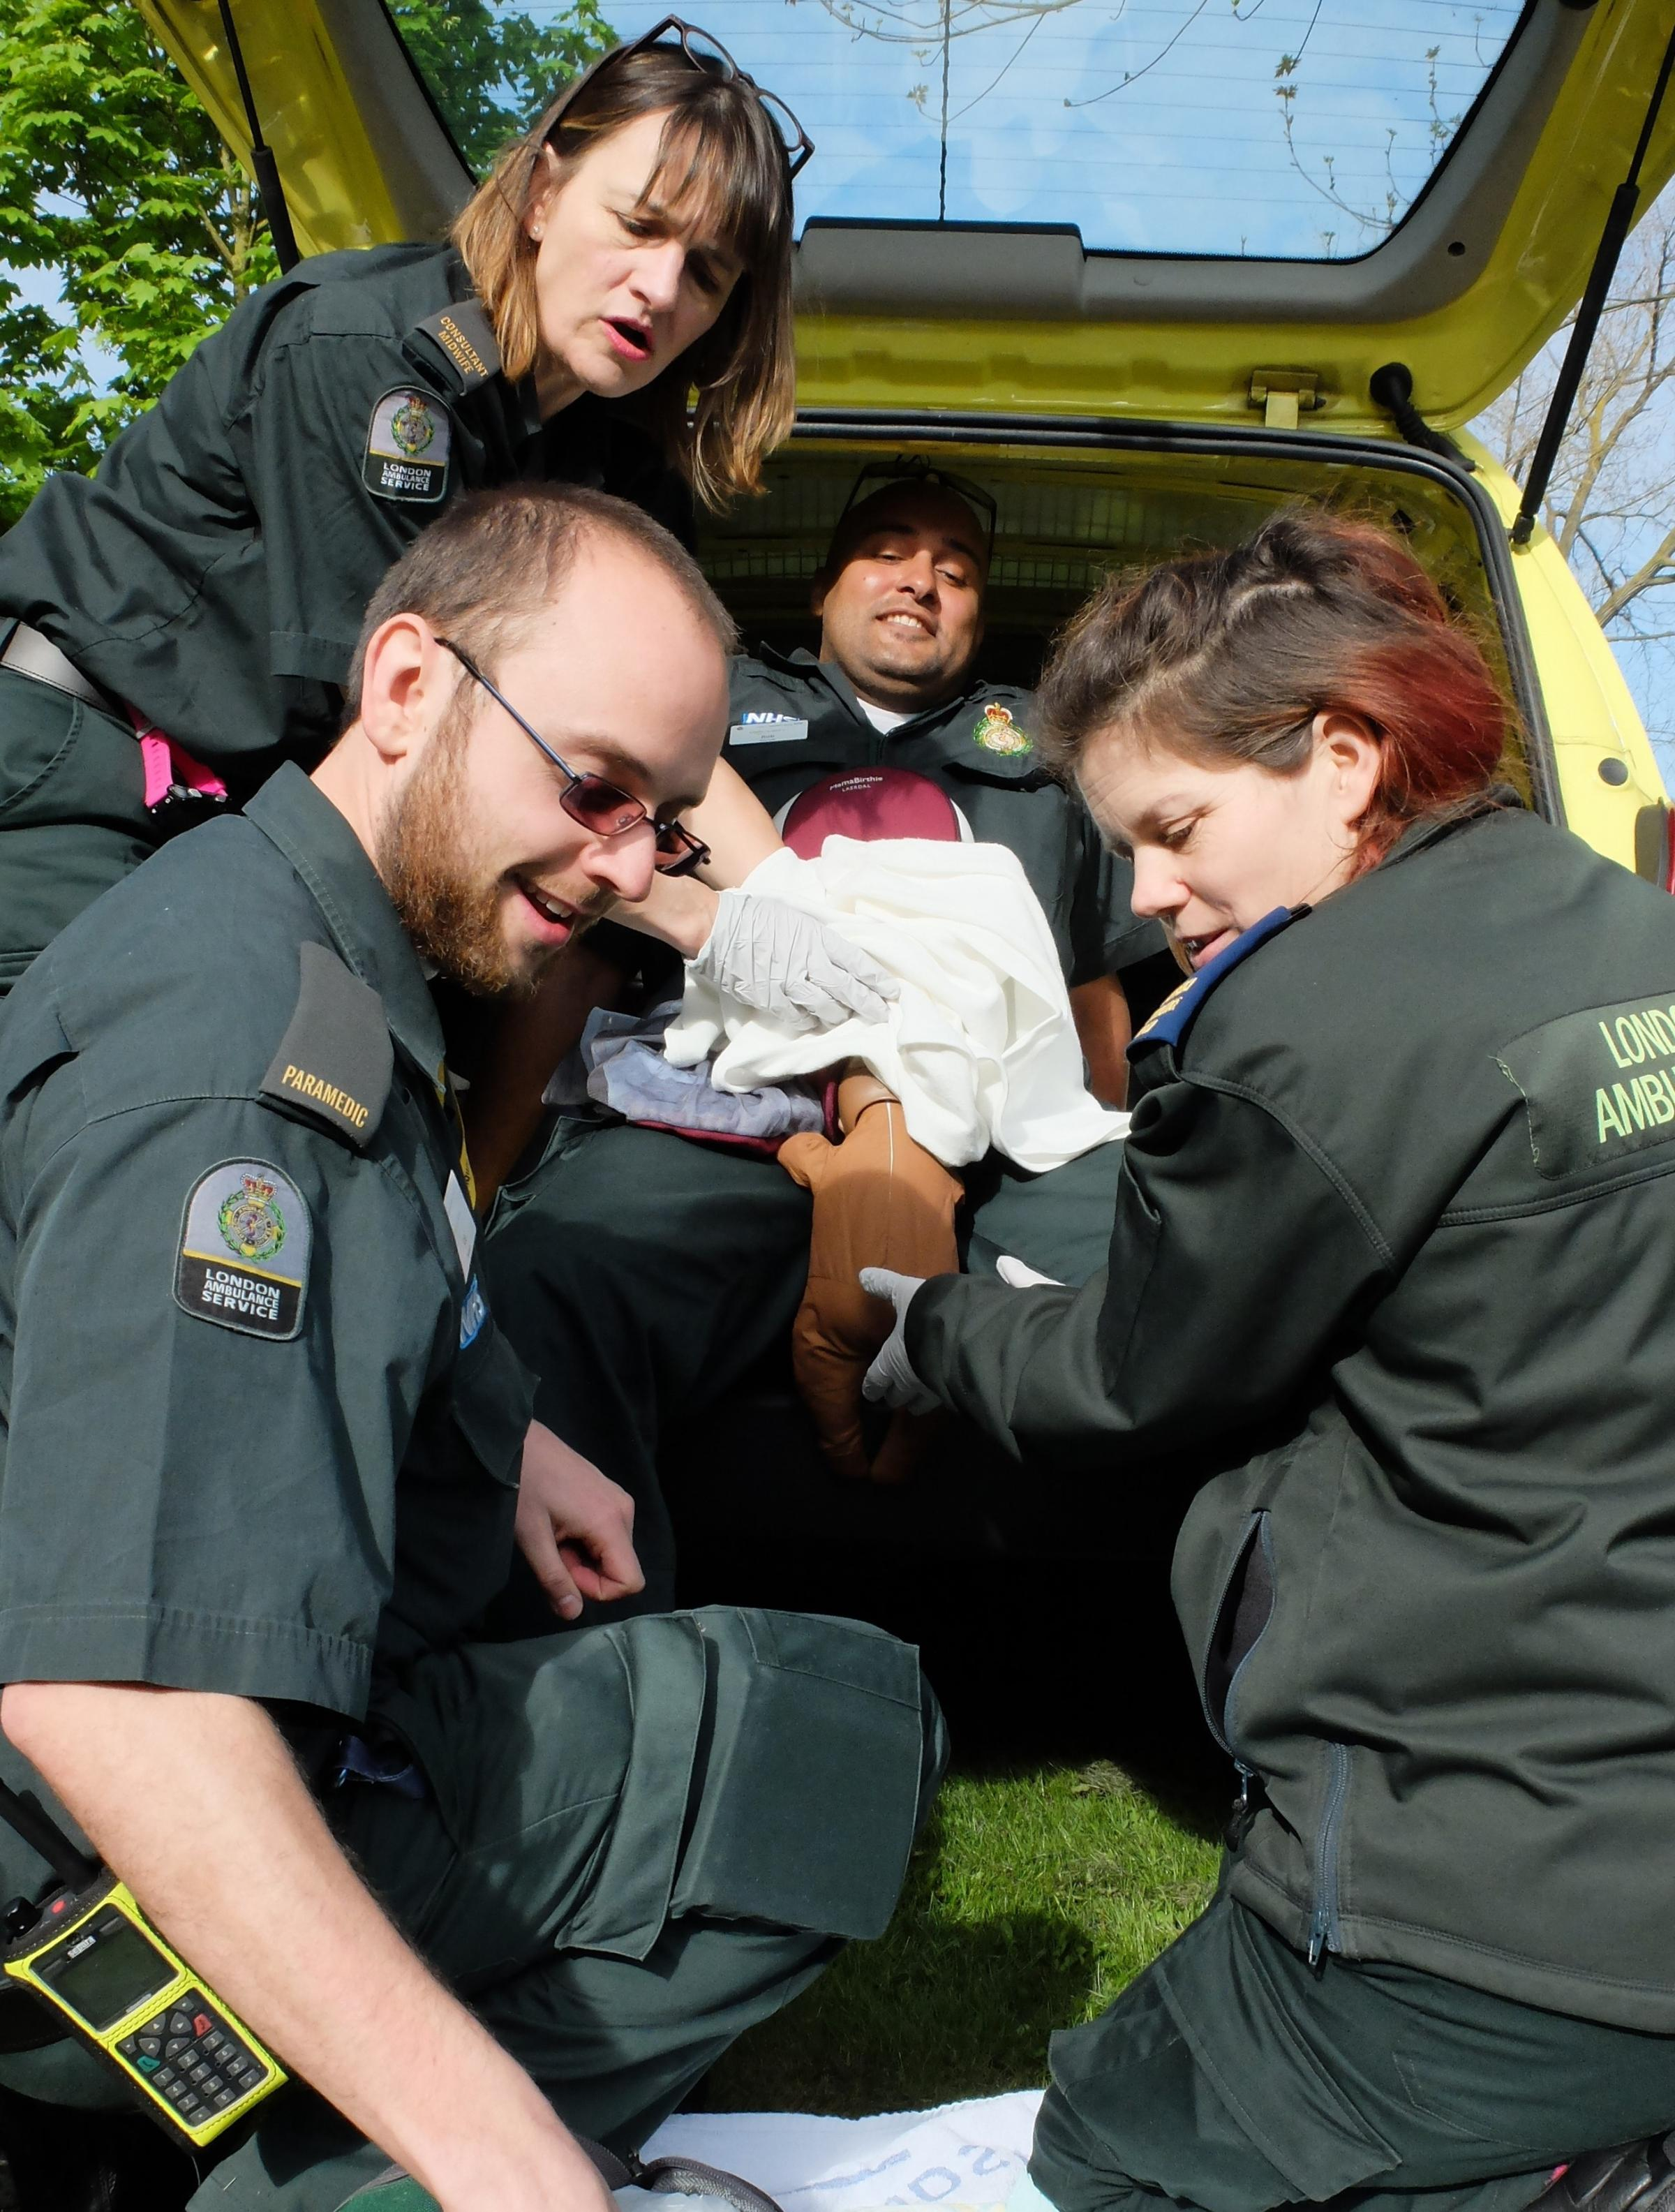 Ambulance team leader in simulated birth during training exercise